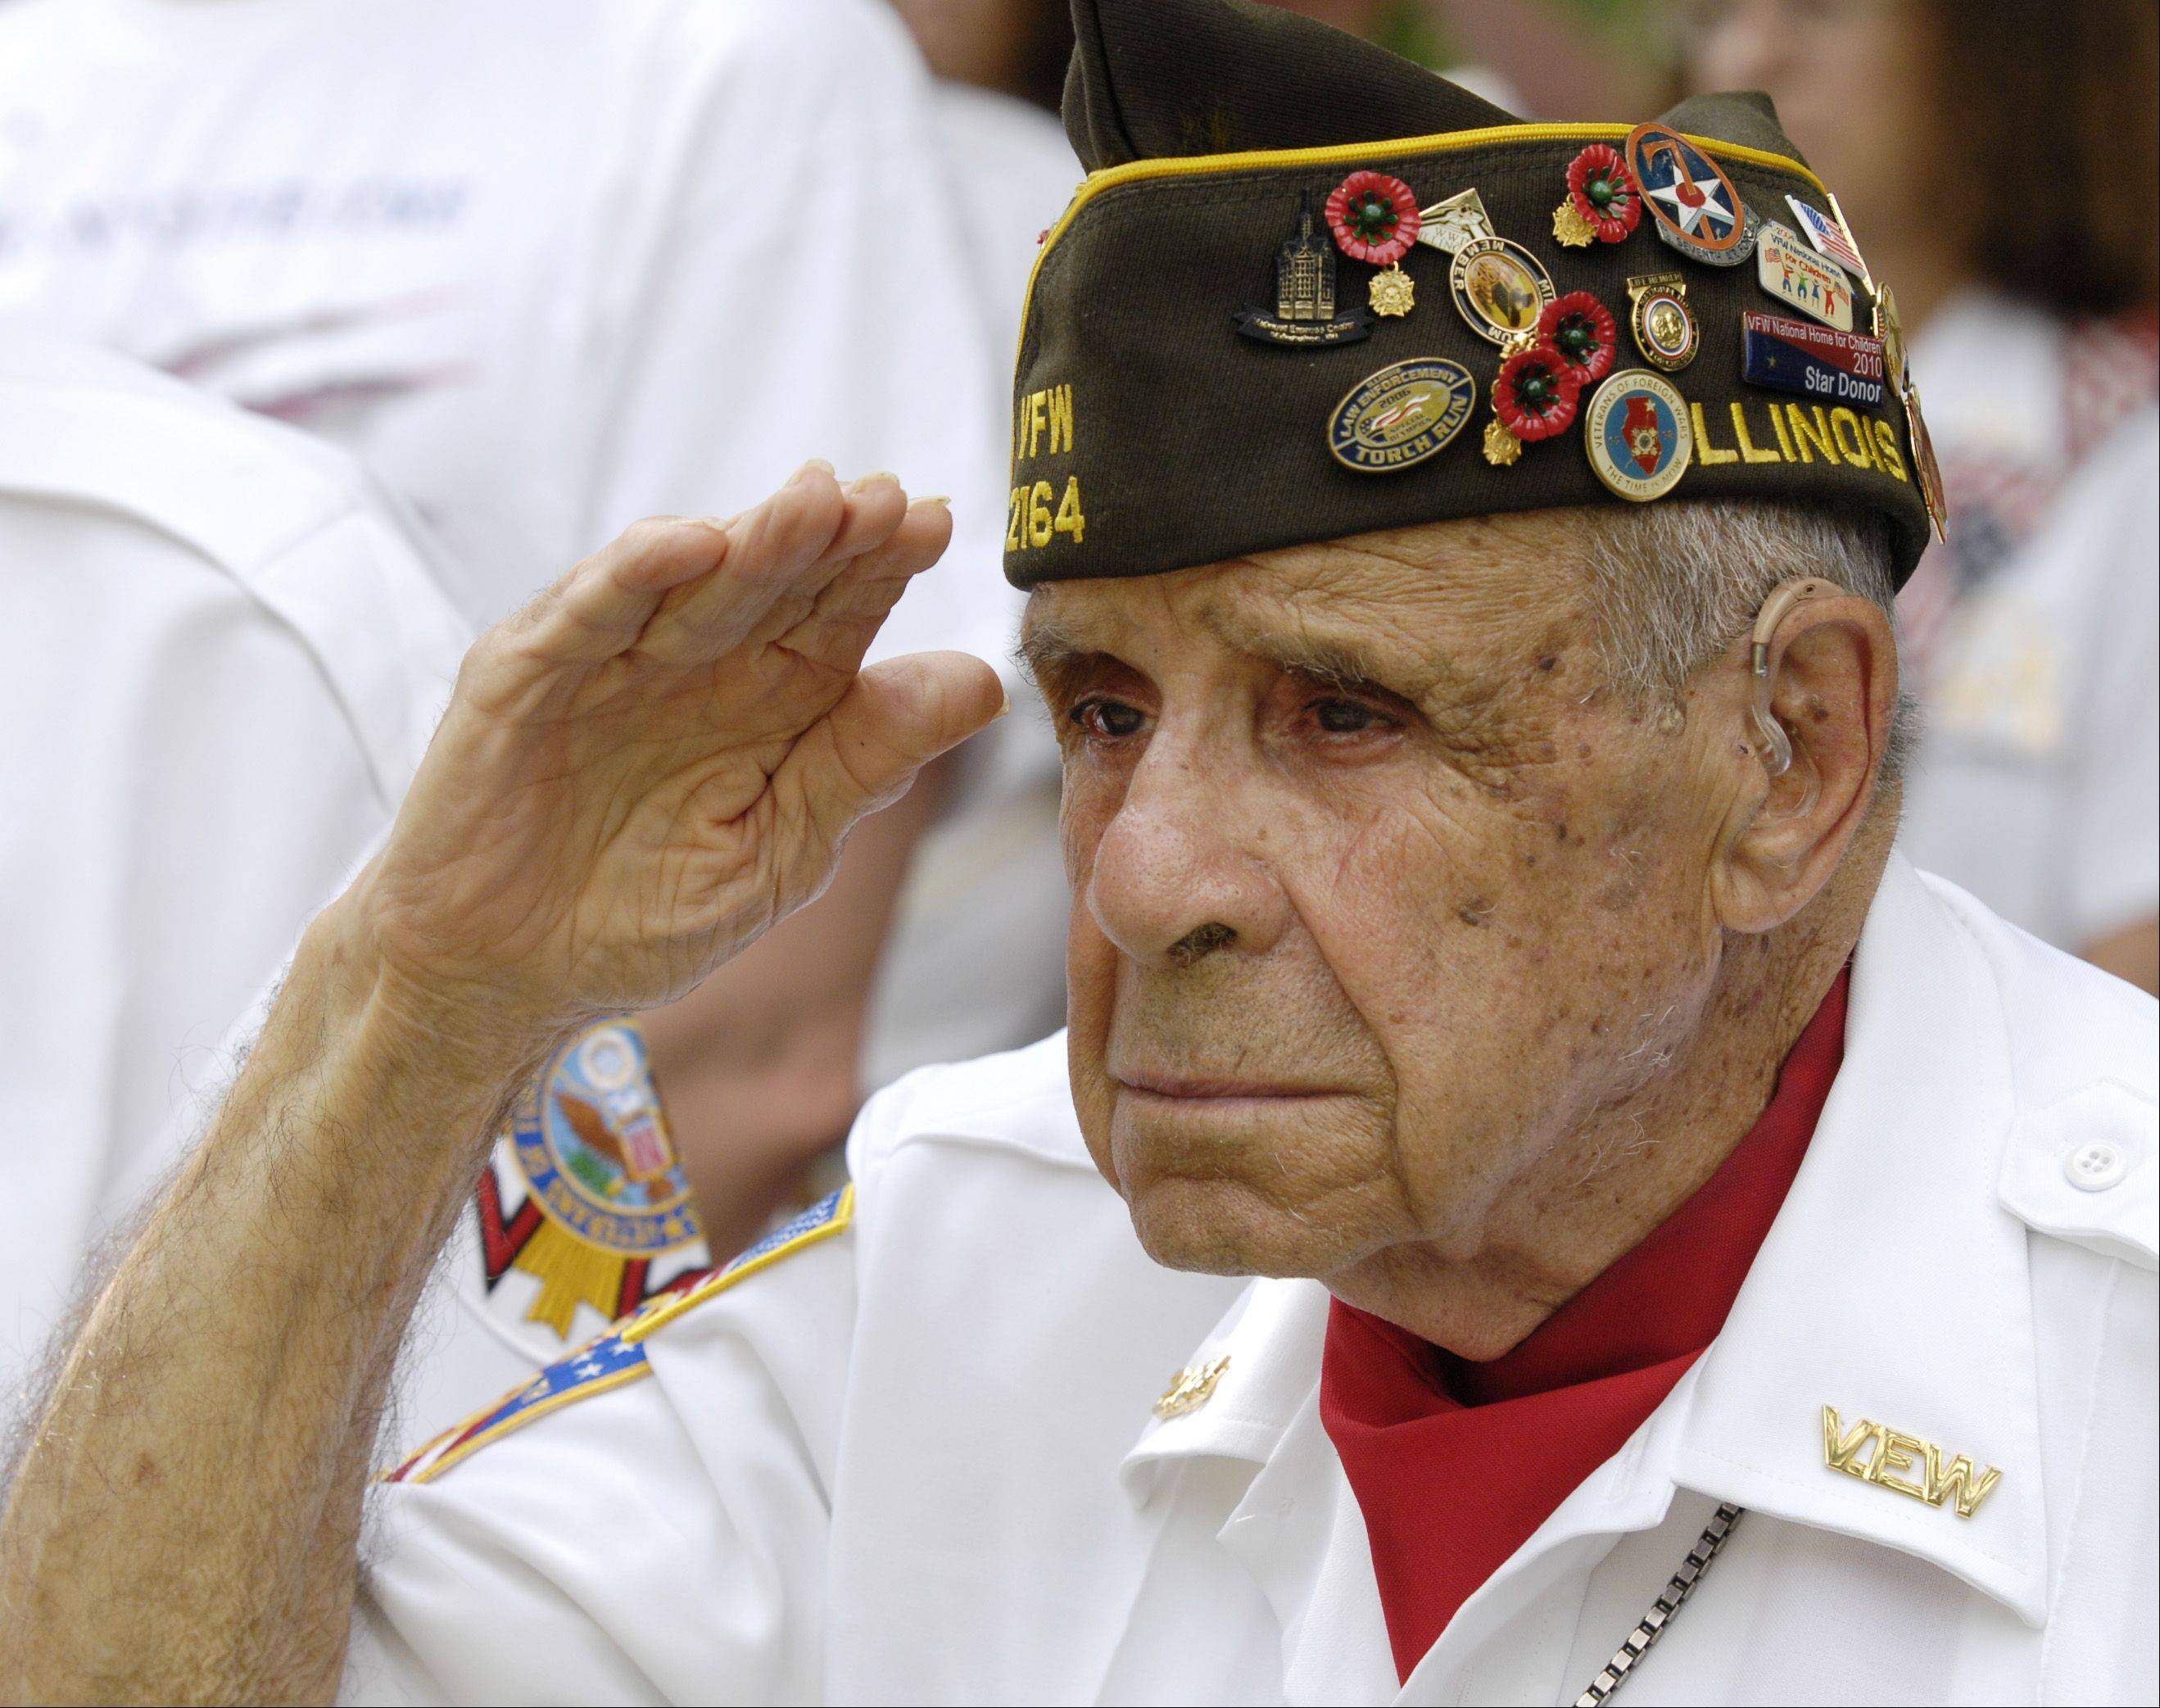 Veterans of Foreign Wars Post 2164 member Louis Licastro a World War II Army Air Corp veteran who survived the Japanese attach on Pearl Harbor in 1941, gives a salute during the Wheaton Memorial Day ceremony at Wheaton Cemetery, Monday.